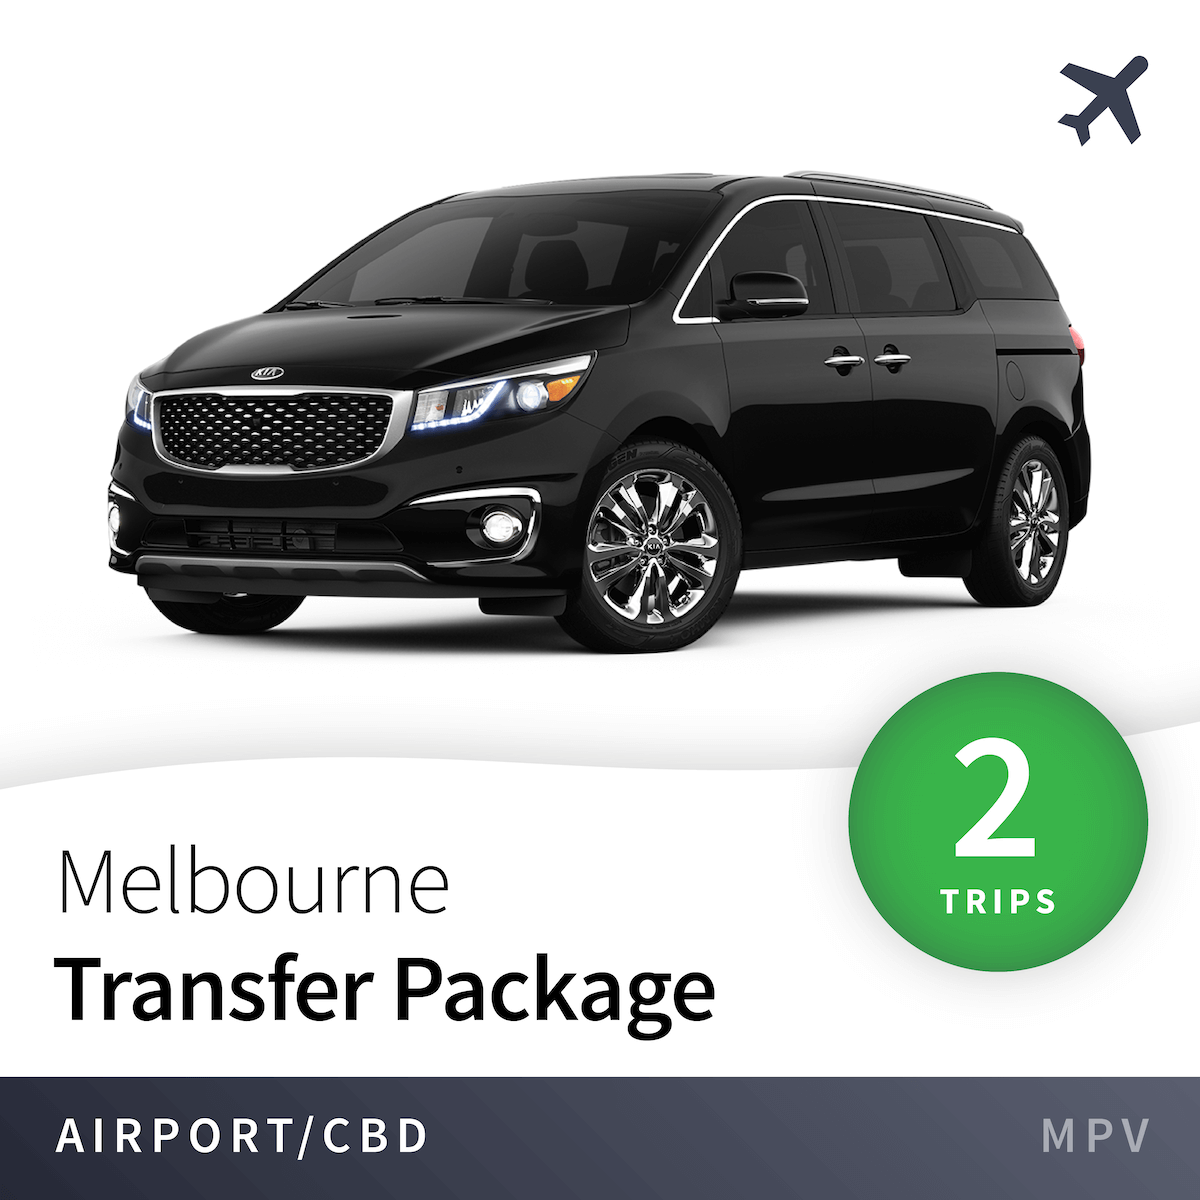 Melbourne Airport Transfer Package - MPV (2 Trips) 1